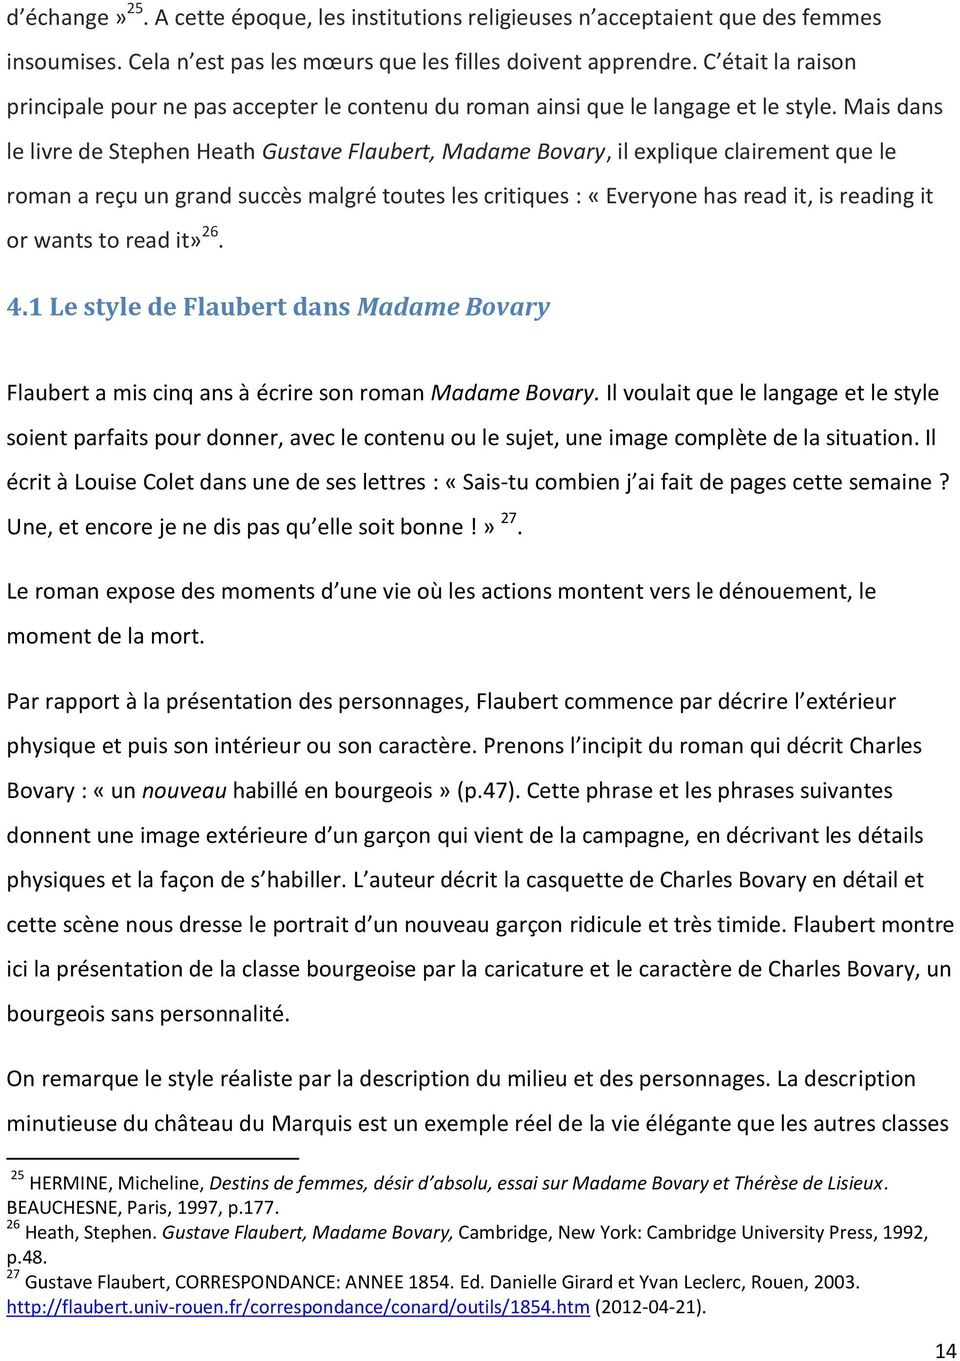 Mais dans le livre de Stephen Heath Gustave Flaubert, Madame Bovary, il explique clairement que le roman a reçu un grand succès malgré toutes les critiques : «Everyone has read it, is reading it or